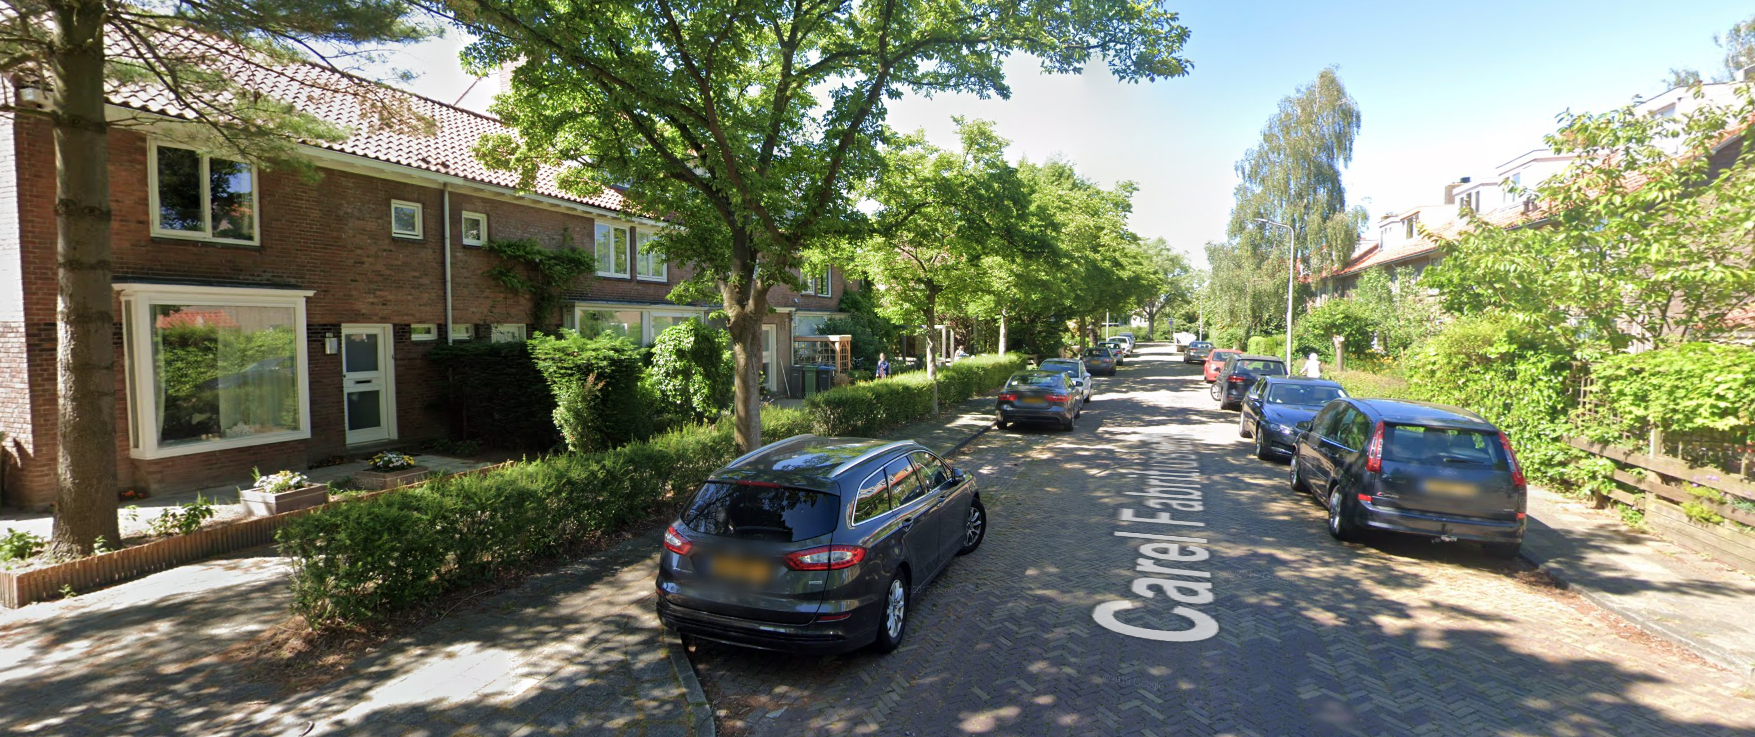 A typical neighborhood in a dutch suburb.